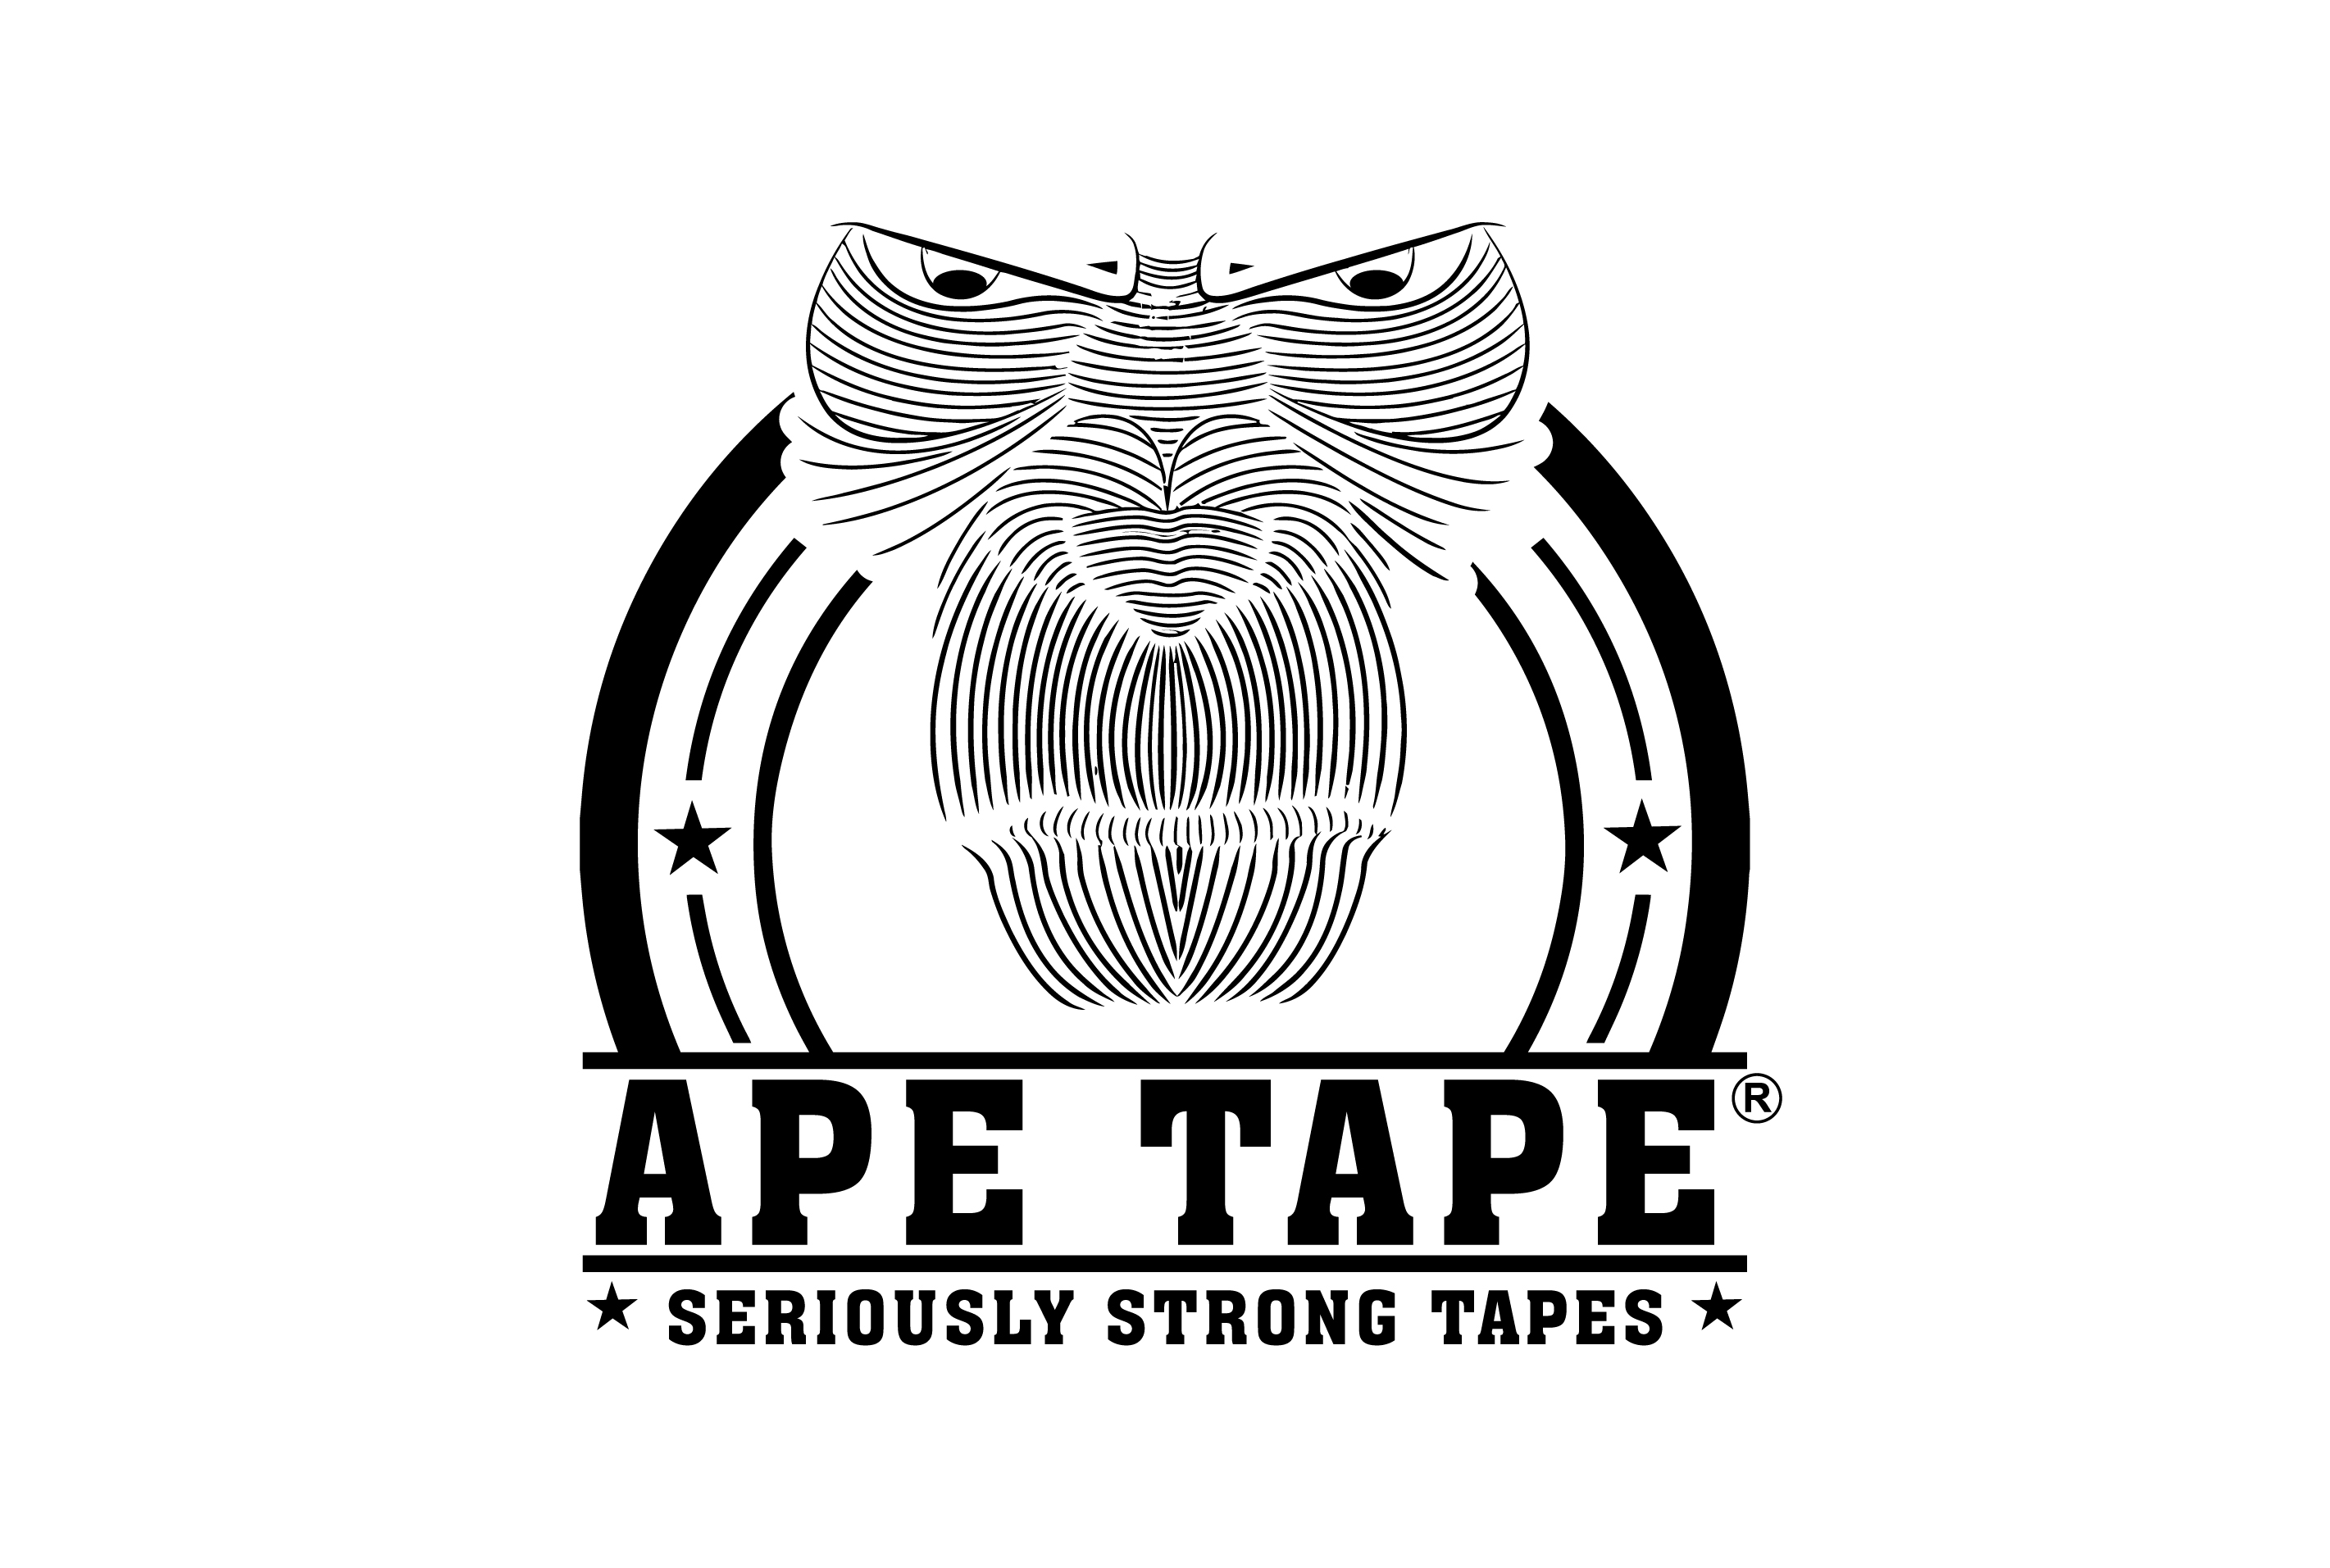 We supply ALOT of Tape!